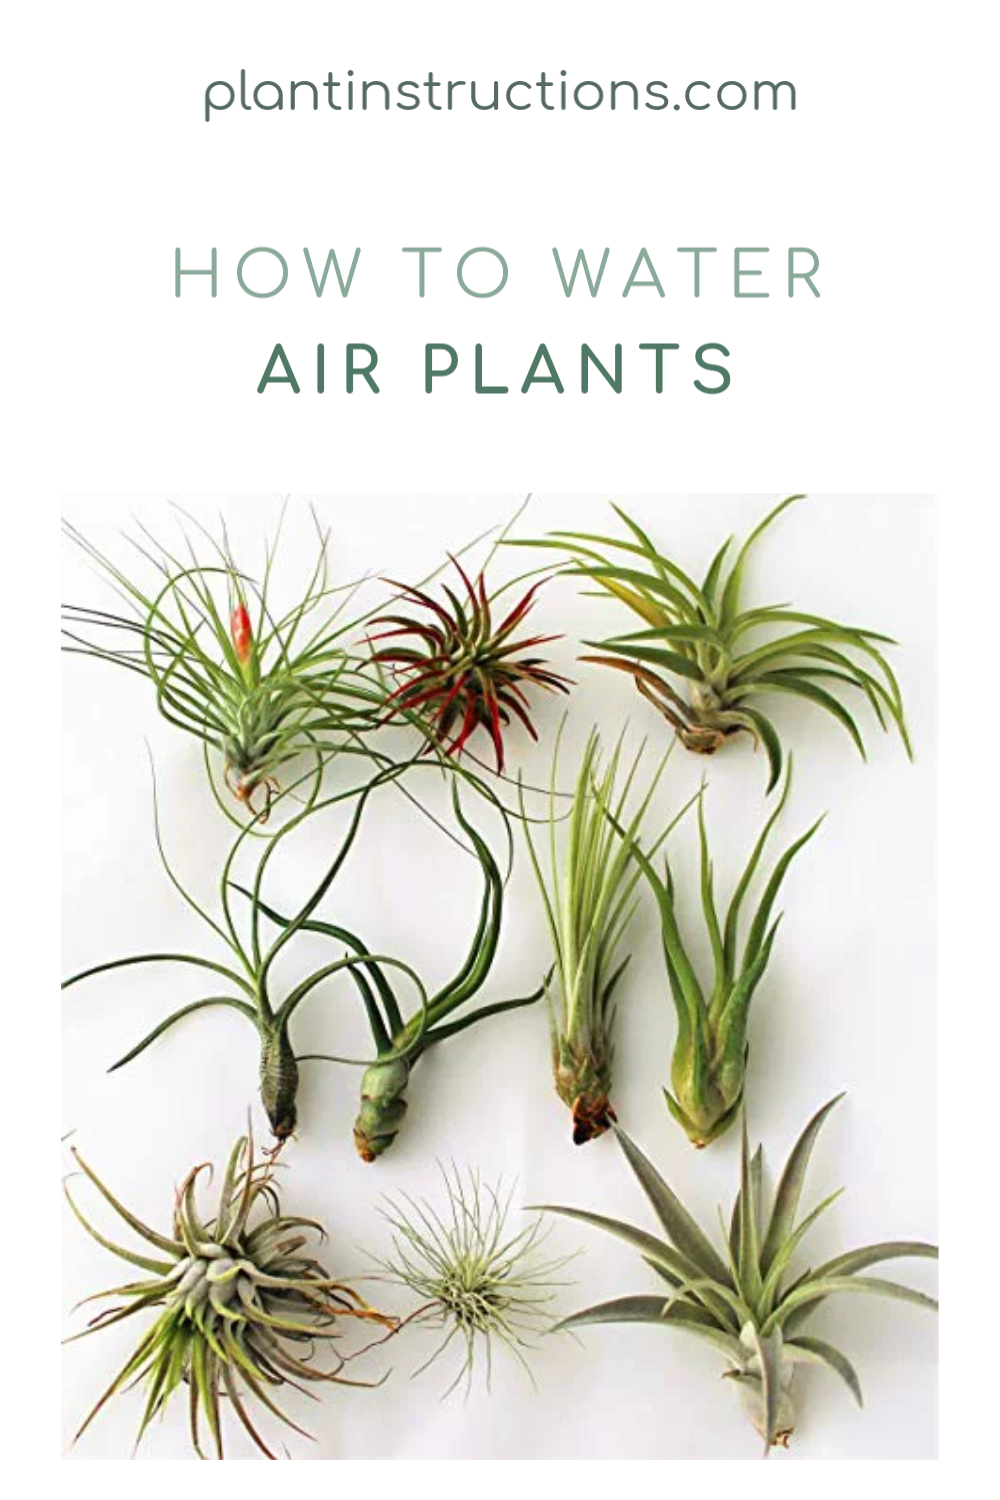 Not sure how to water air plants? In this easy to follow guide, we\'ll show you exactly the right way to watering air plants! If you don\'t have the greenest of thumbs, air plants are some of the best plants you can have in your home.